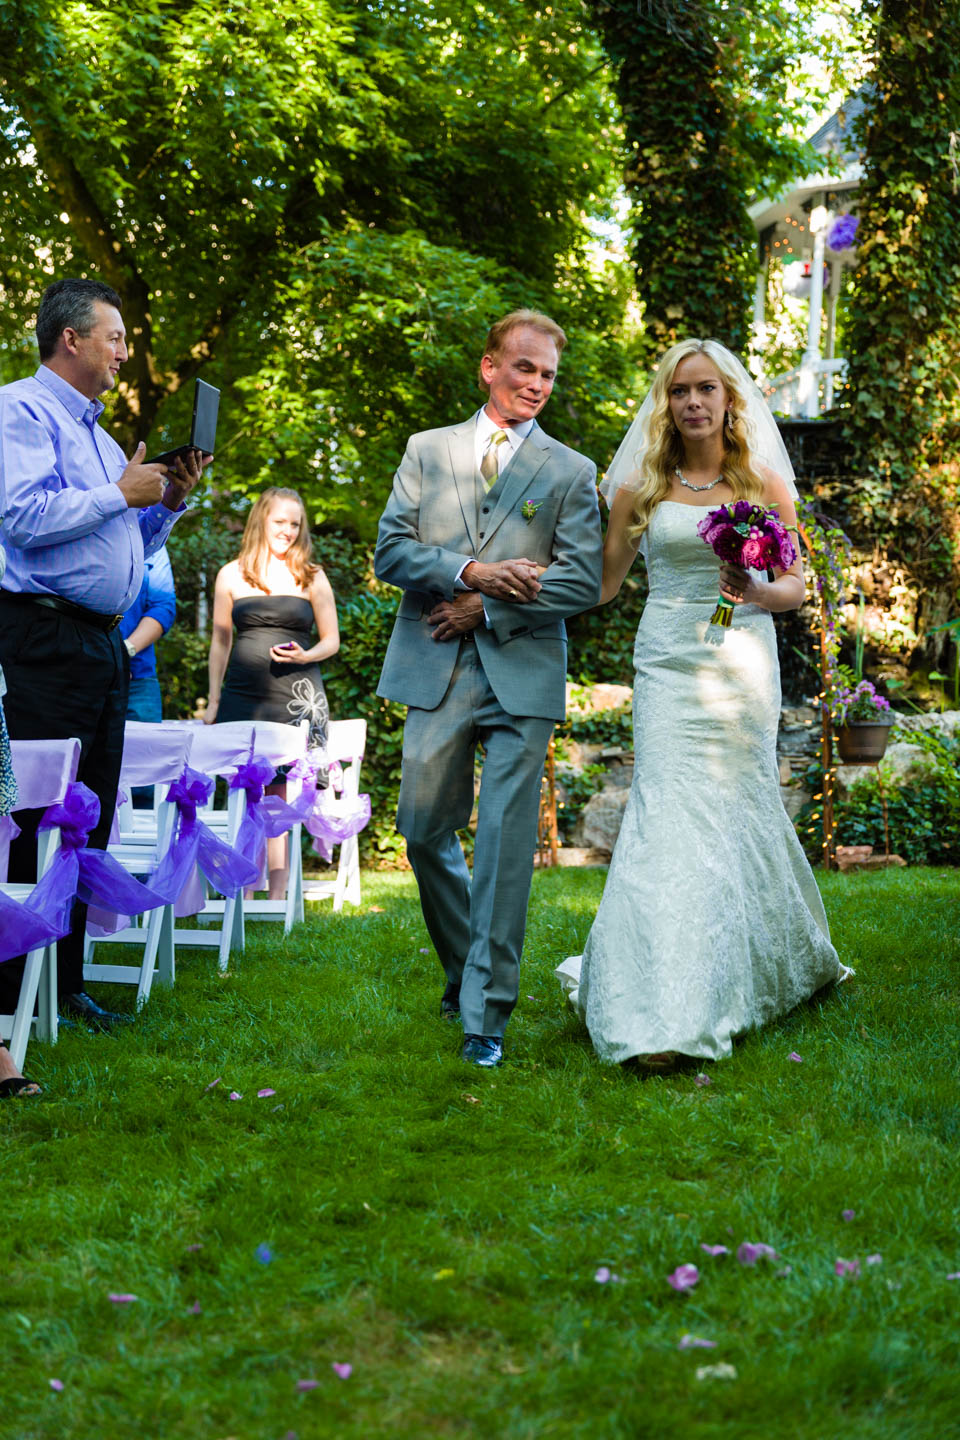 Father of the bride walks her down the aisle